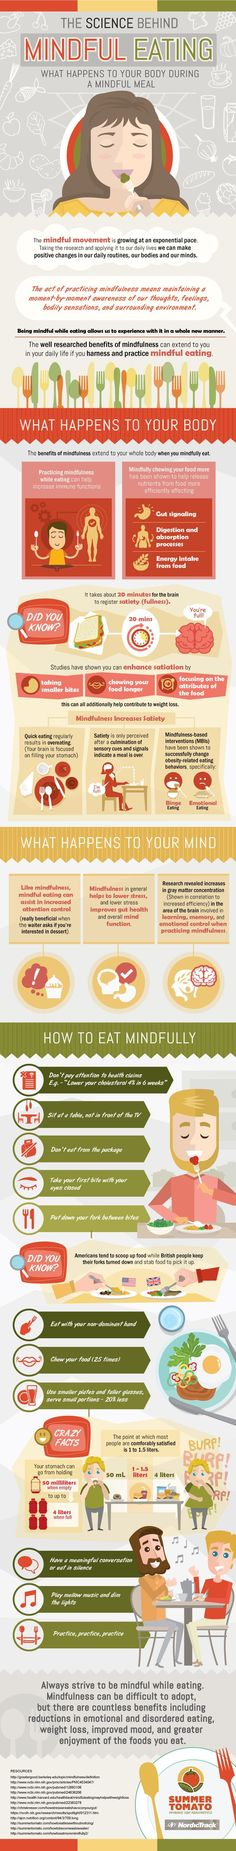 Blog post featuring an infographic that highlights the science behind mindful eating. Visit www.PaleoDelivers.com to see more.